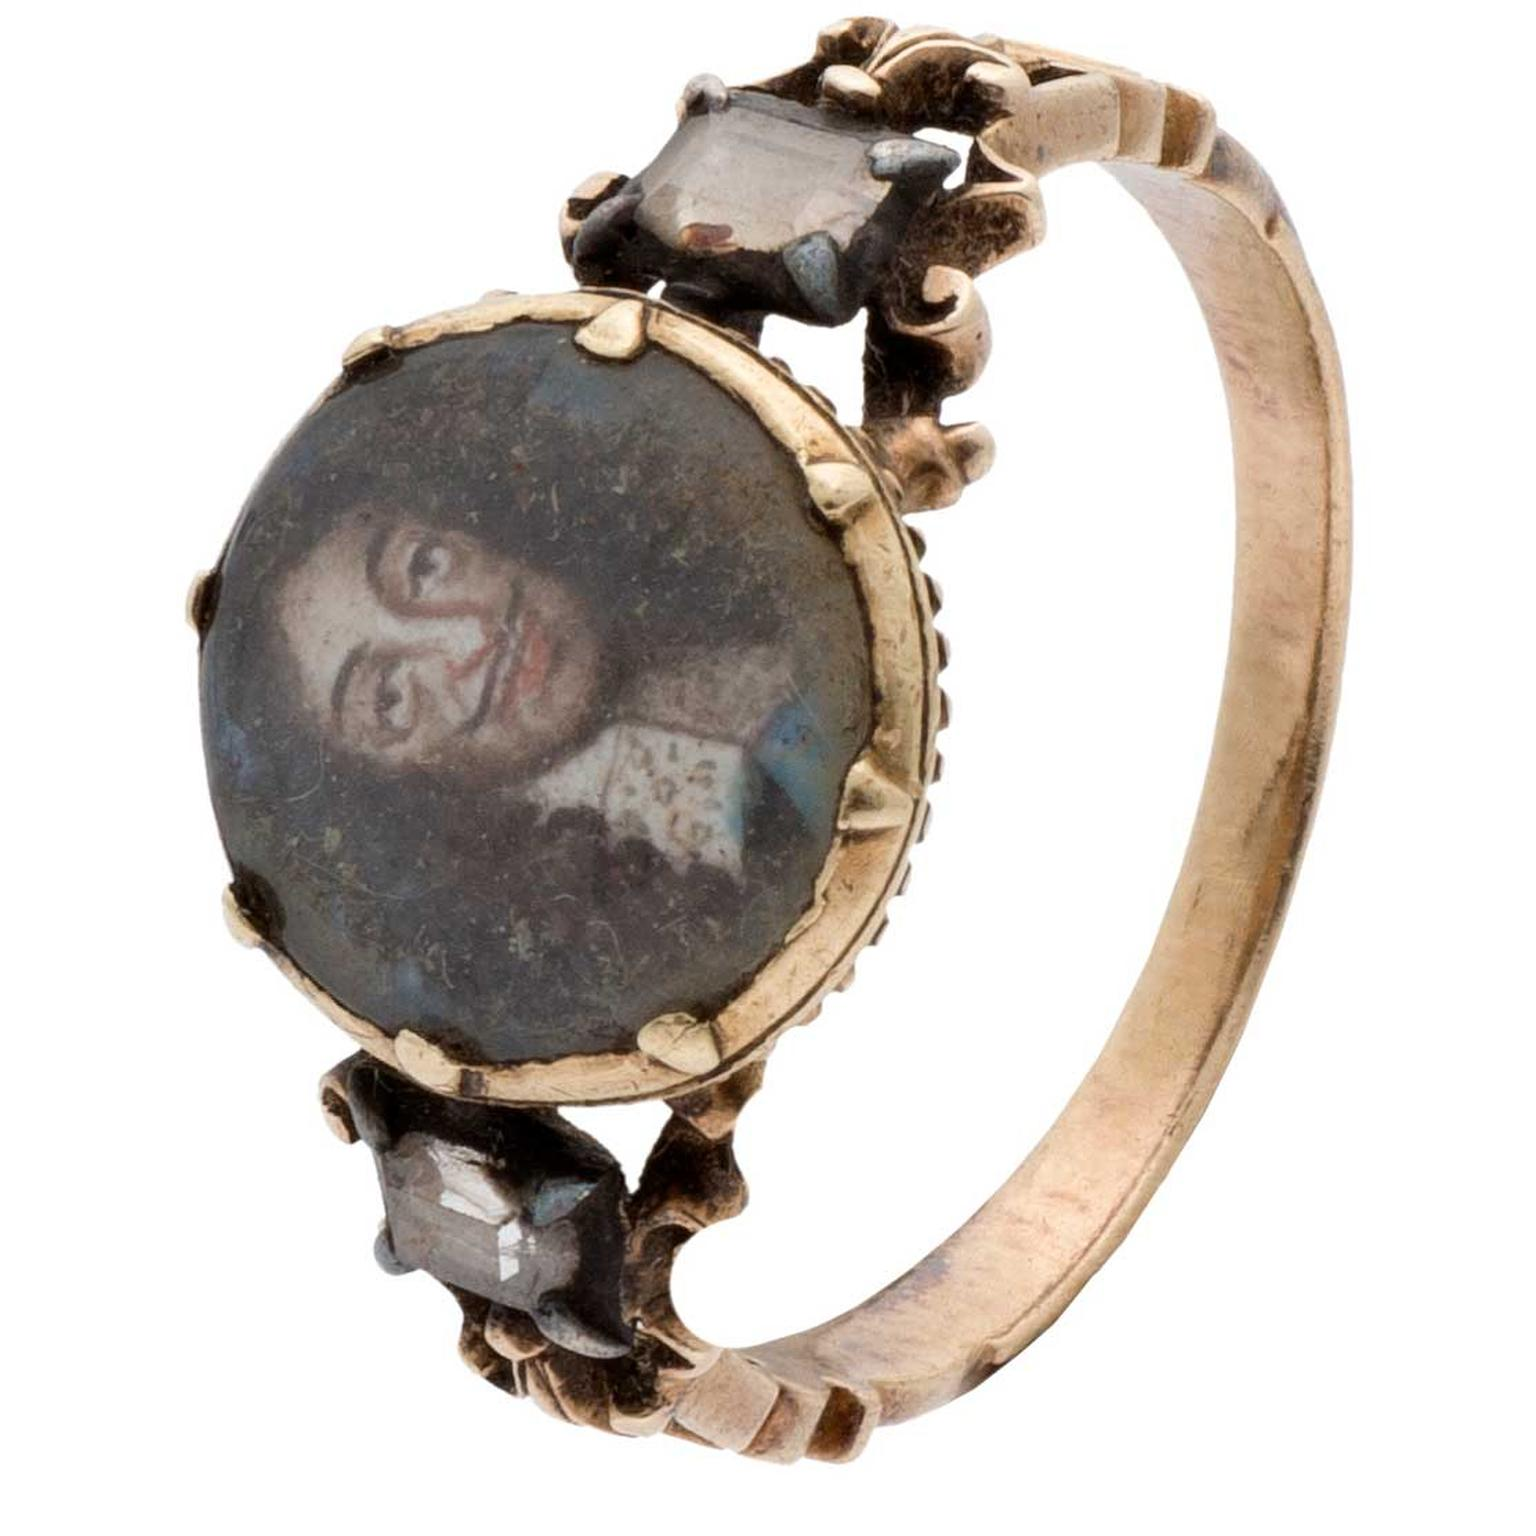 Stuart ring featuring King Charles II